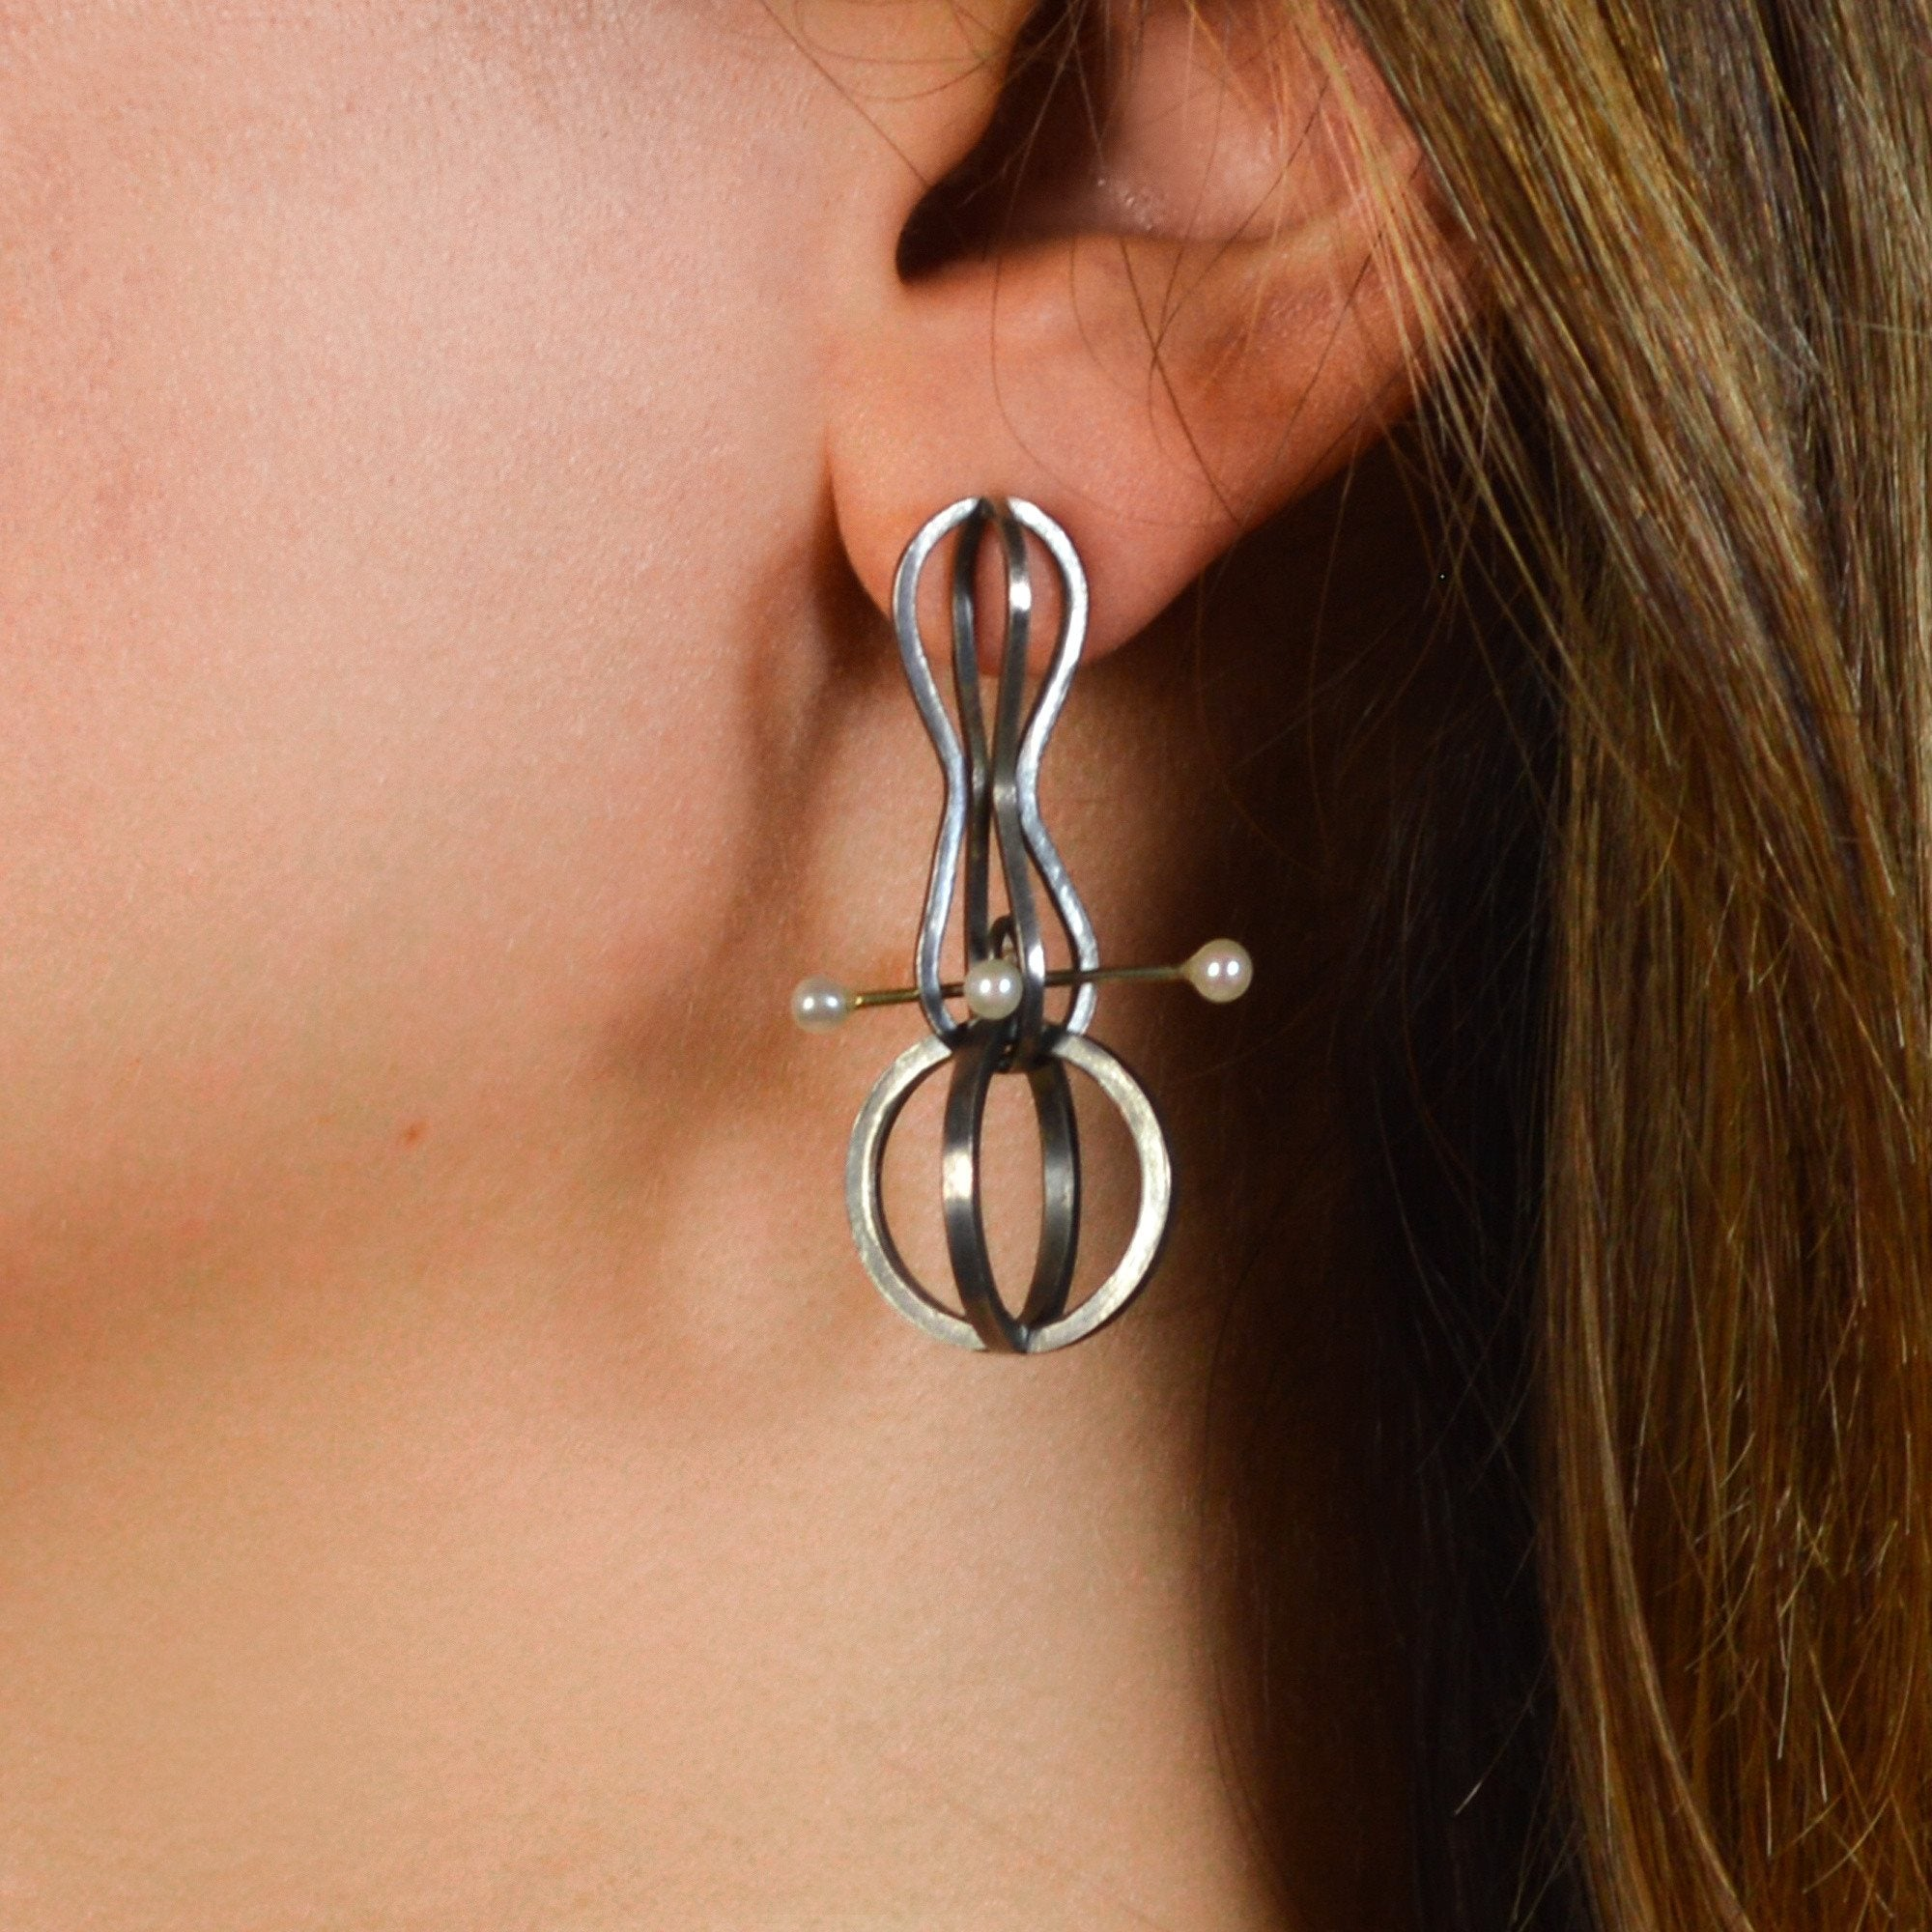 Retro Orbit Drop Earrings in Sterling Silver, 14k Gold, Pearls